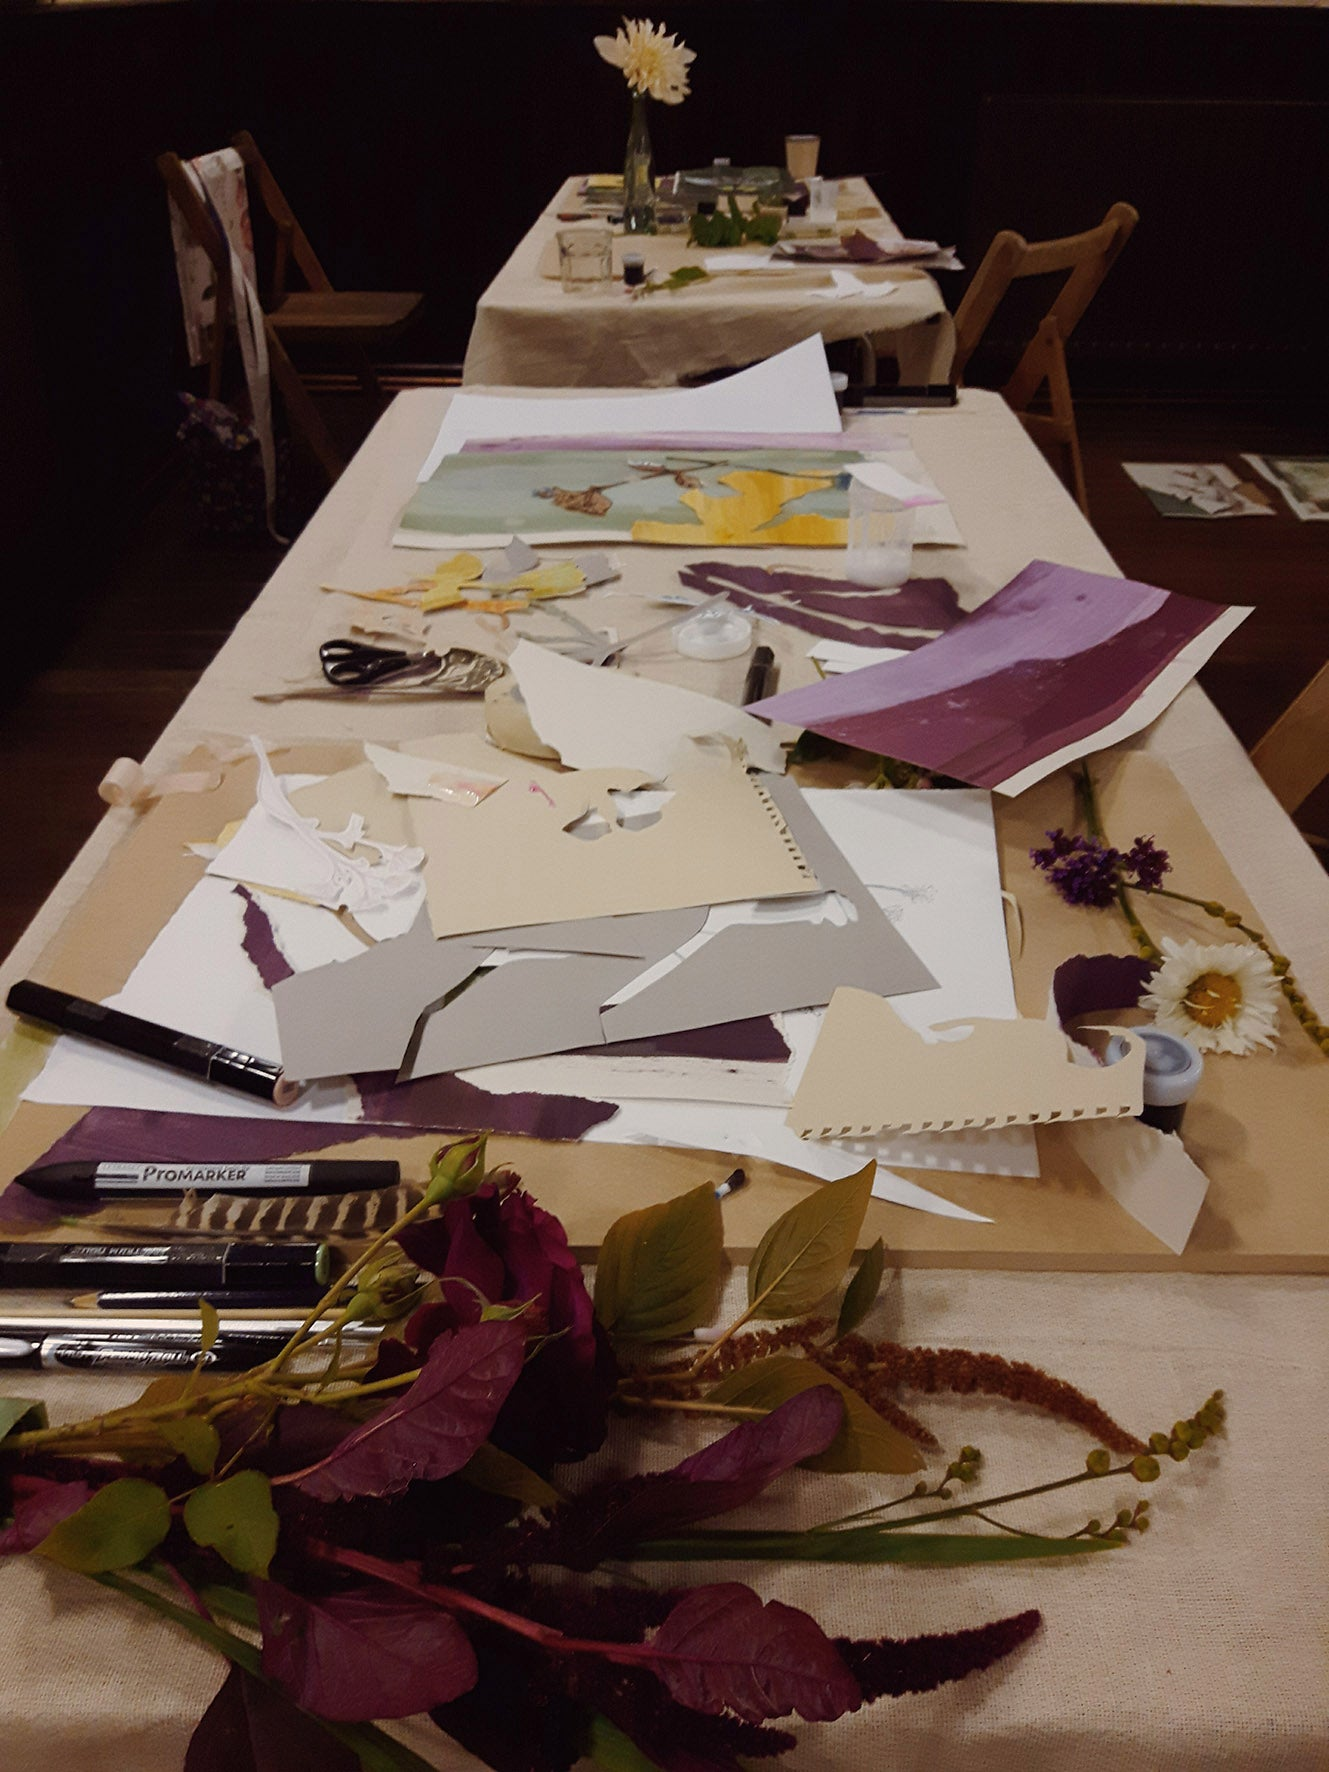 THE SUNDAY ART SCHOOL - SUNDAY 3rd JUNE (EVENING)